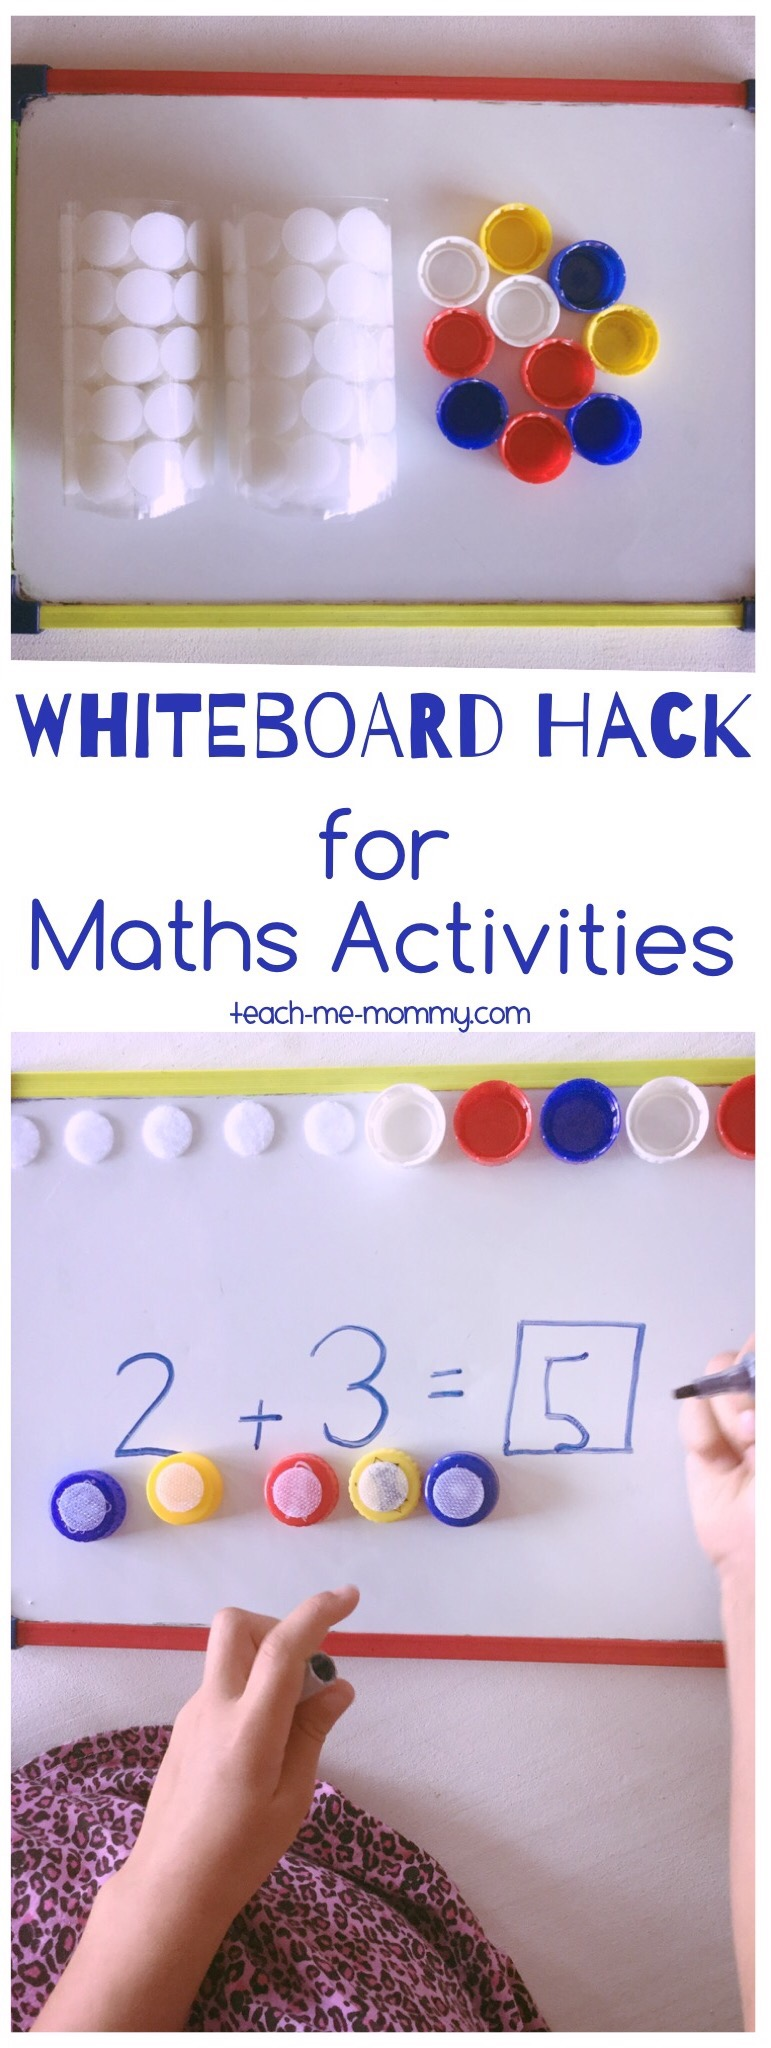 how to teach checkers on a whiteboard